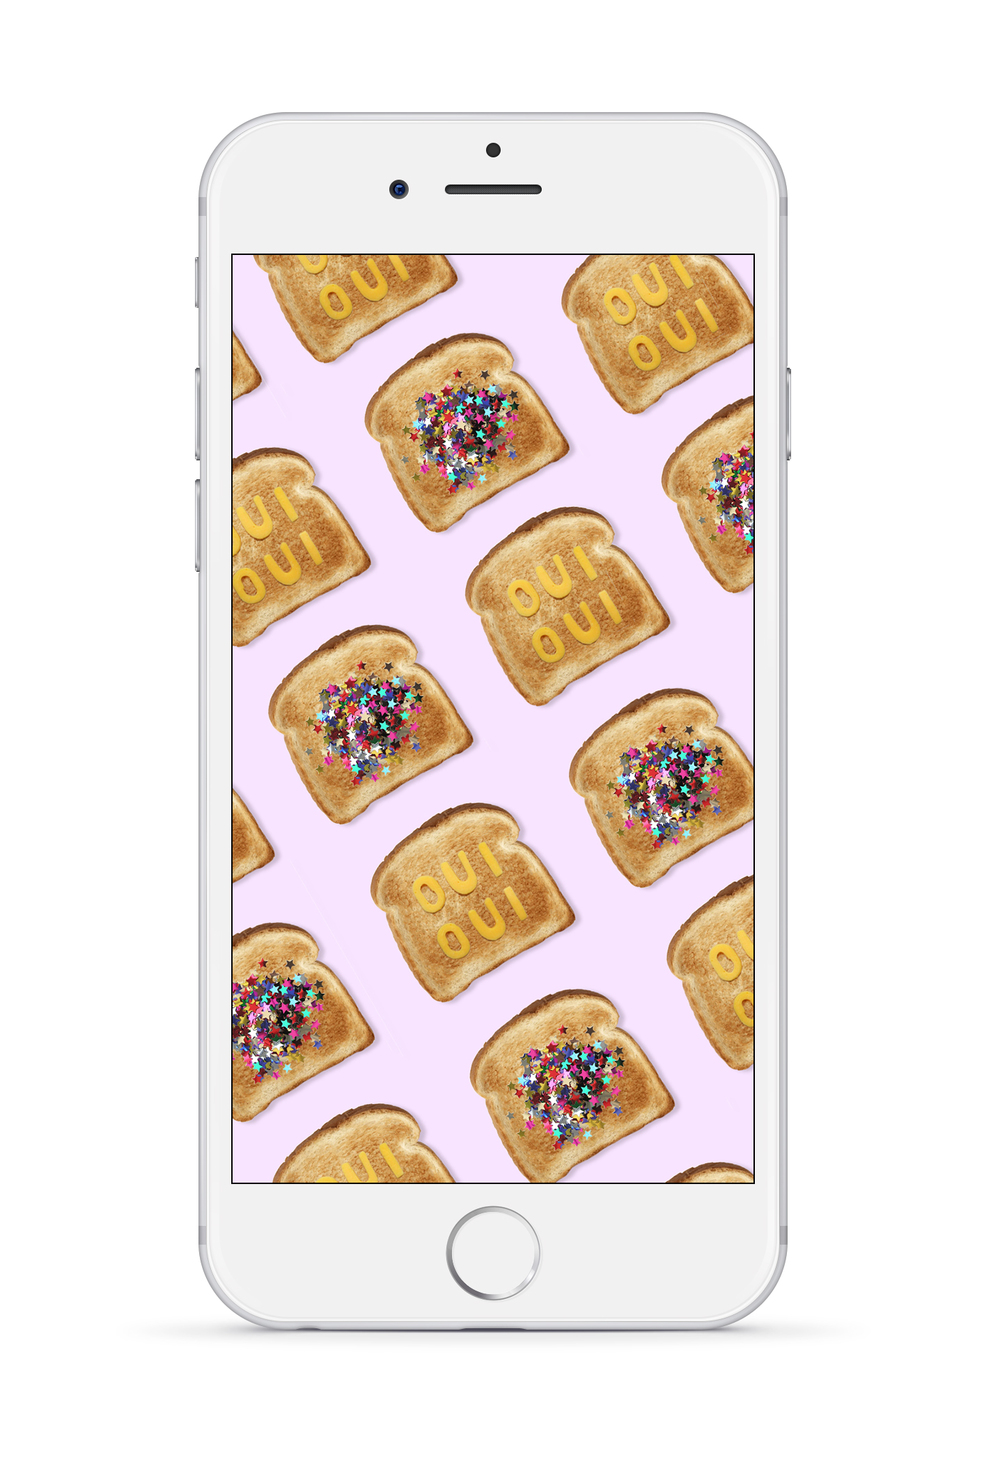 toast-wallpaper-mockup.jpg